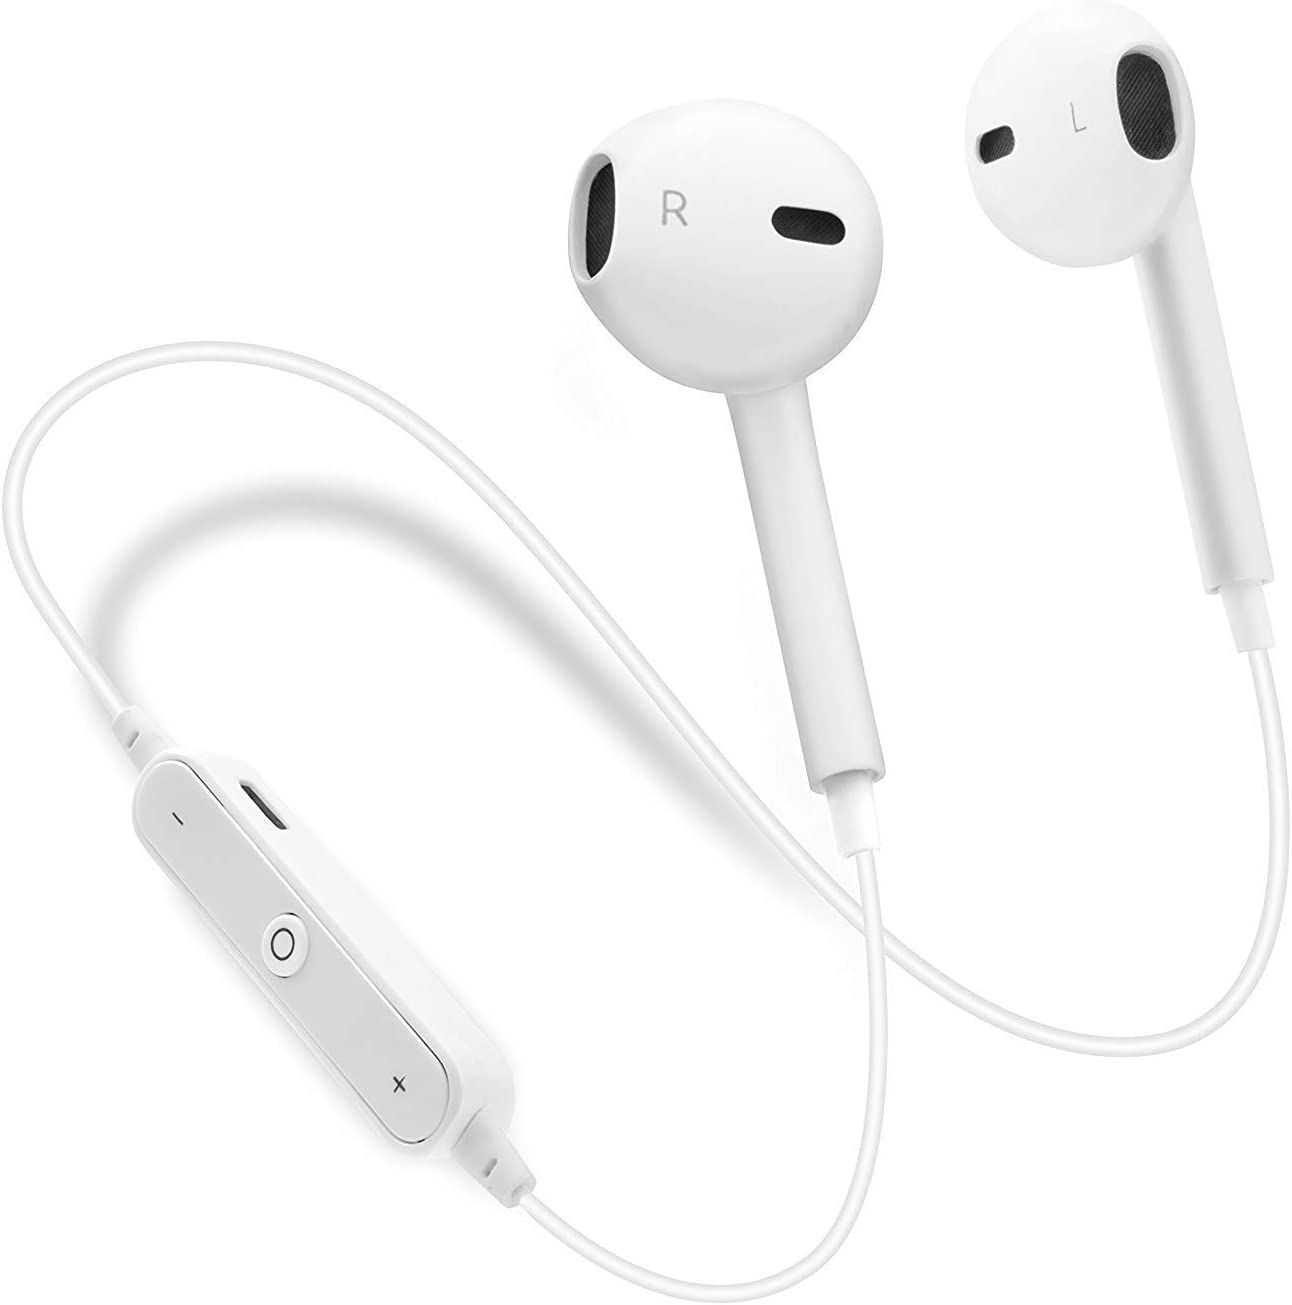 Bluetooth Headphones in Ear Sport Earbuds for Gym Hiking Cycling Wireless Headsets Noise Cancelling with Mic 03